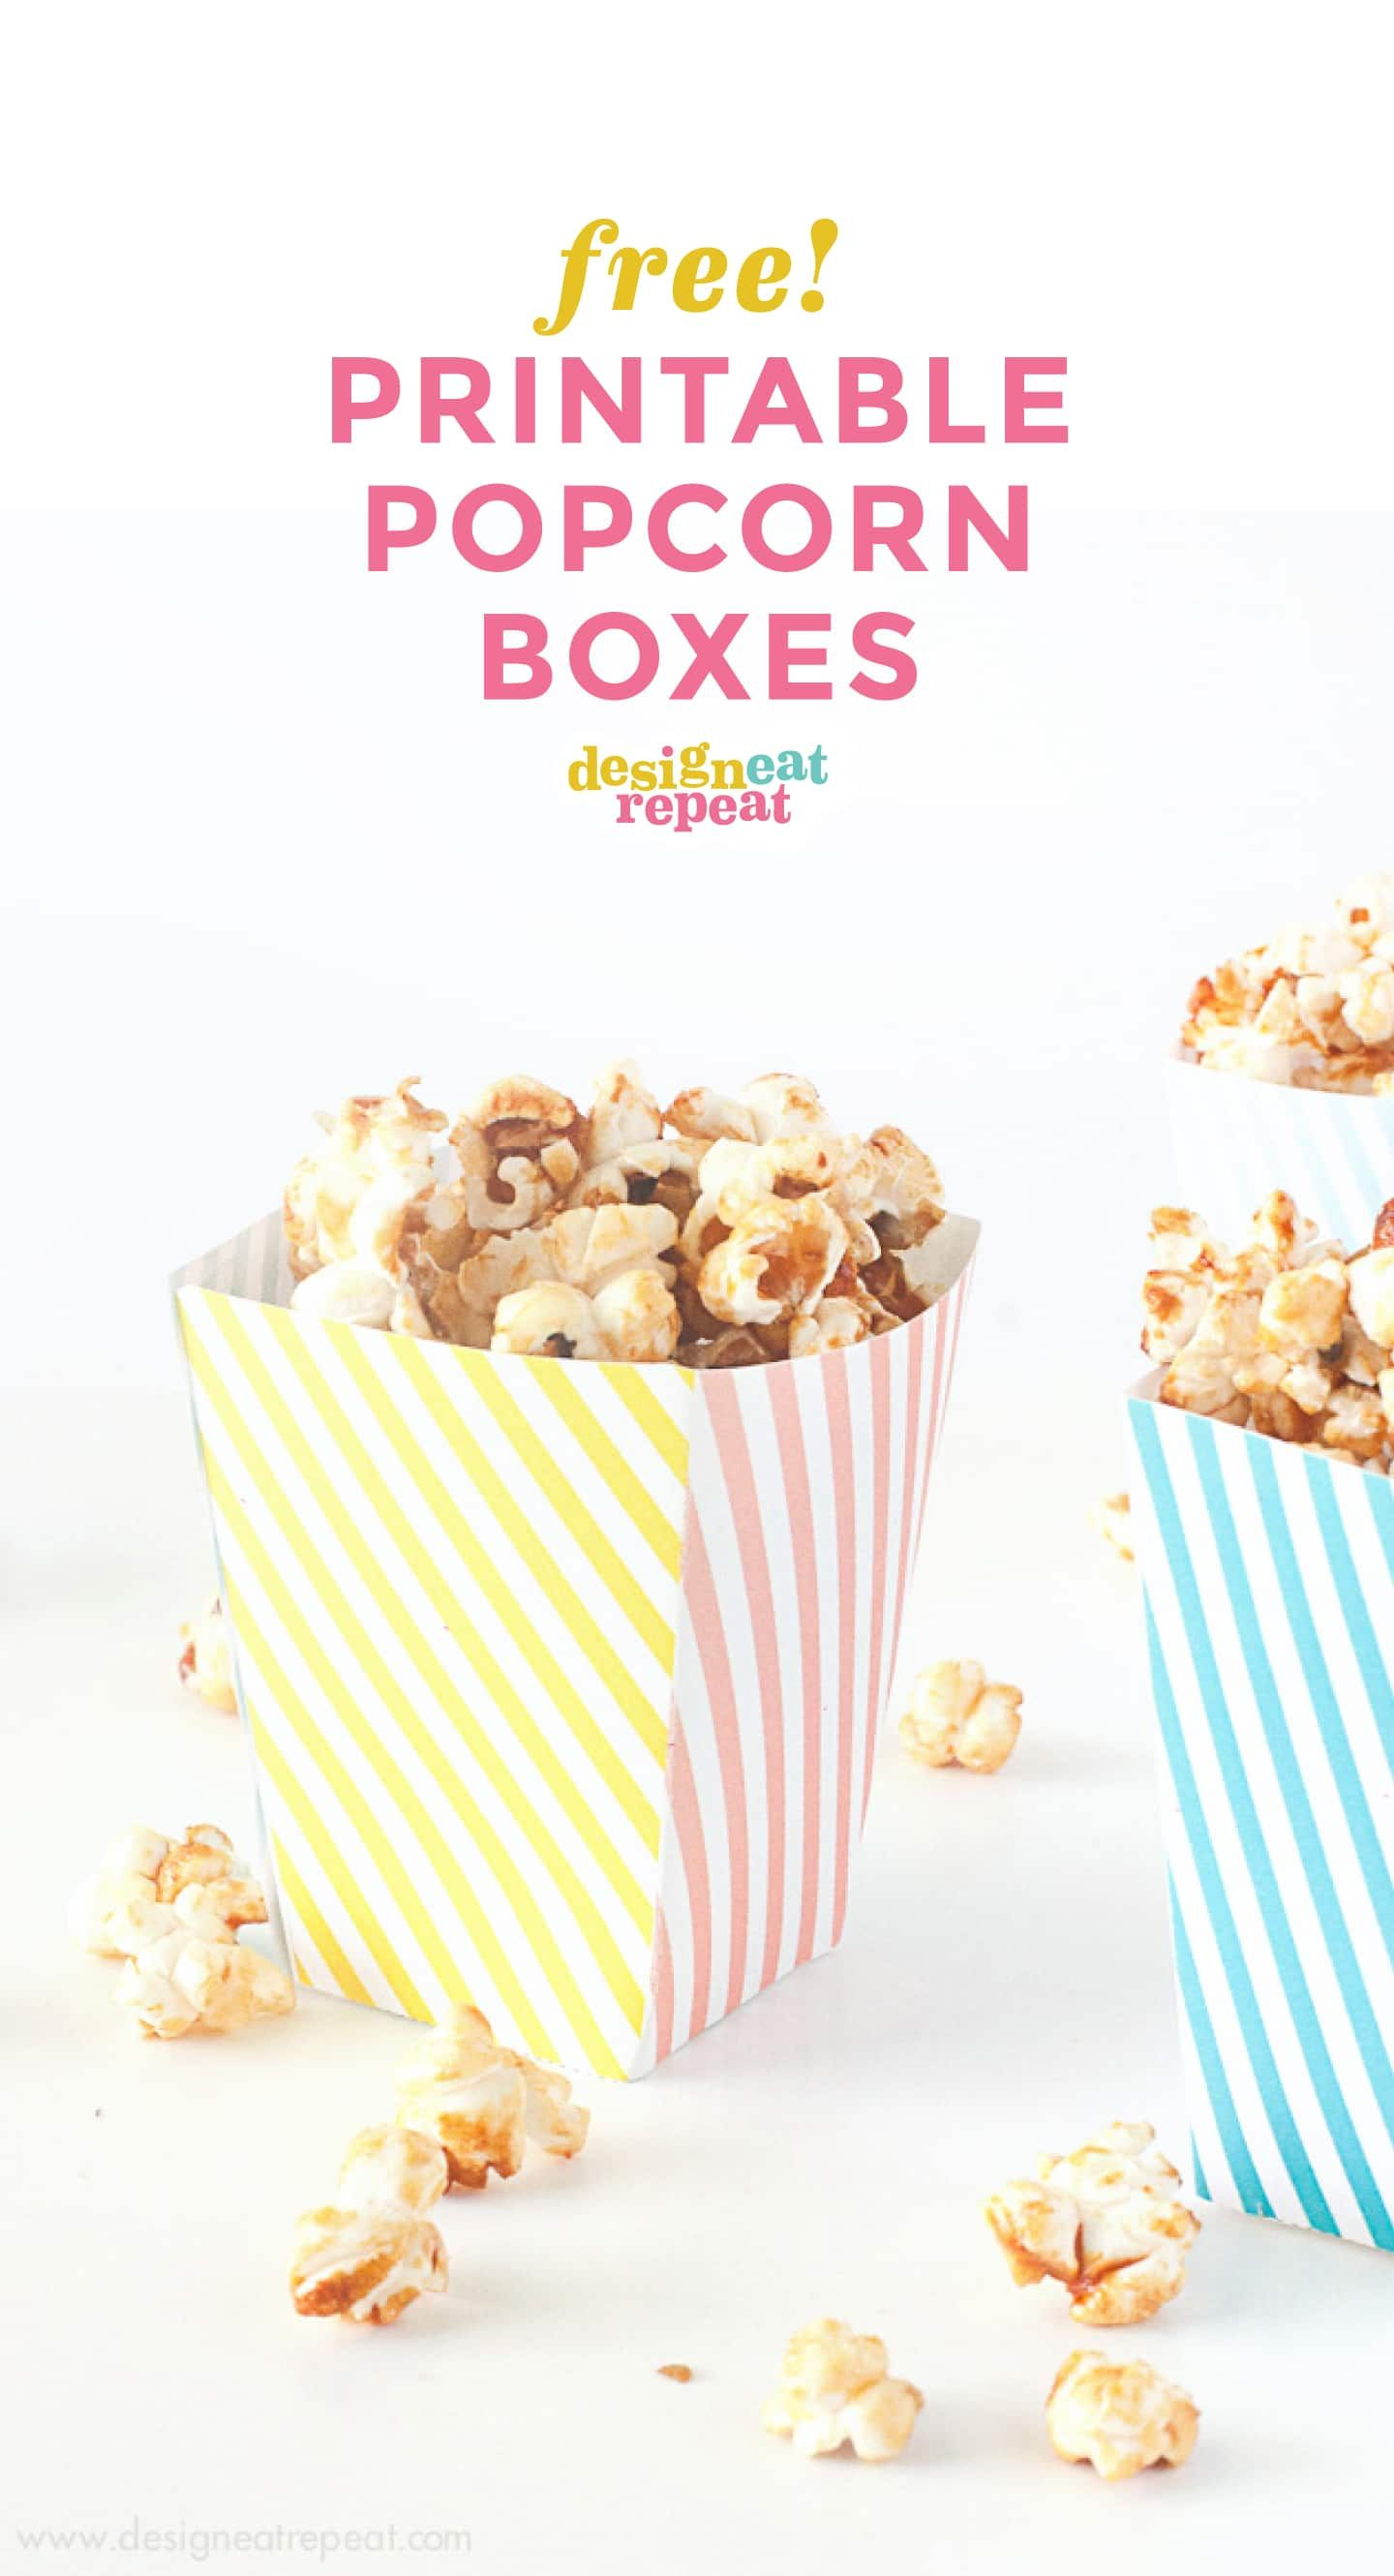 Pink Yellow And Blue Striped Free Printable Popcorn Box Template For Birthday Circus Party Baby Shower Popcorn Box Template Popcorn Box Popcorn Box Diy